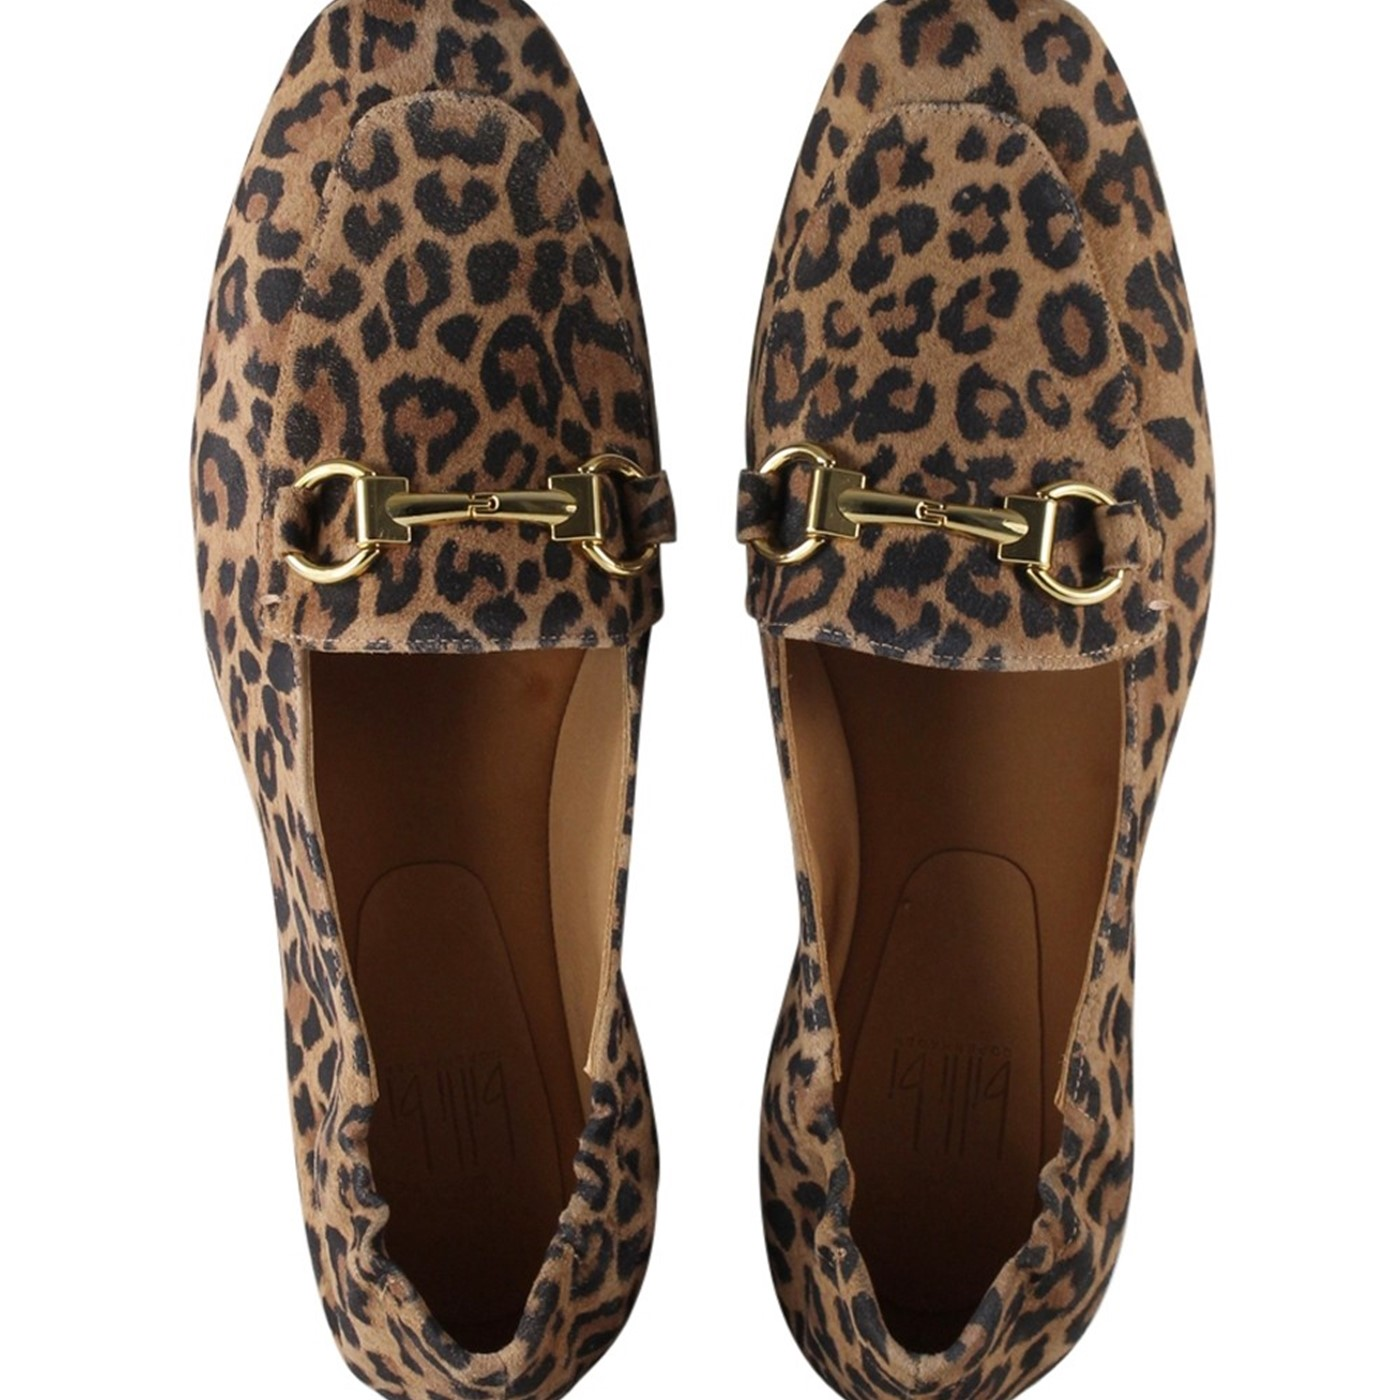 060b9b3e18b LOAFER I LEOPARD (15221) - Holst Sko